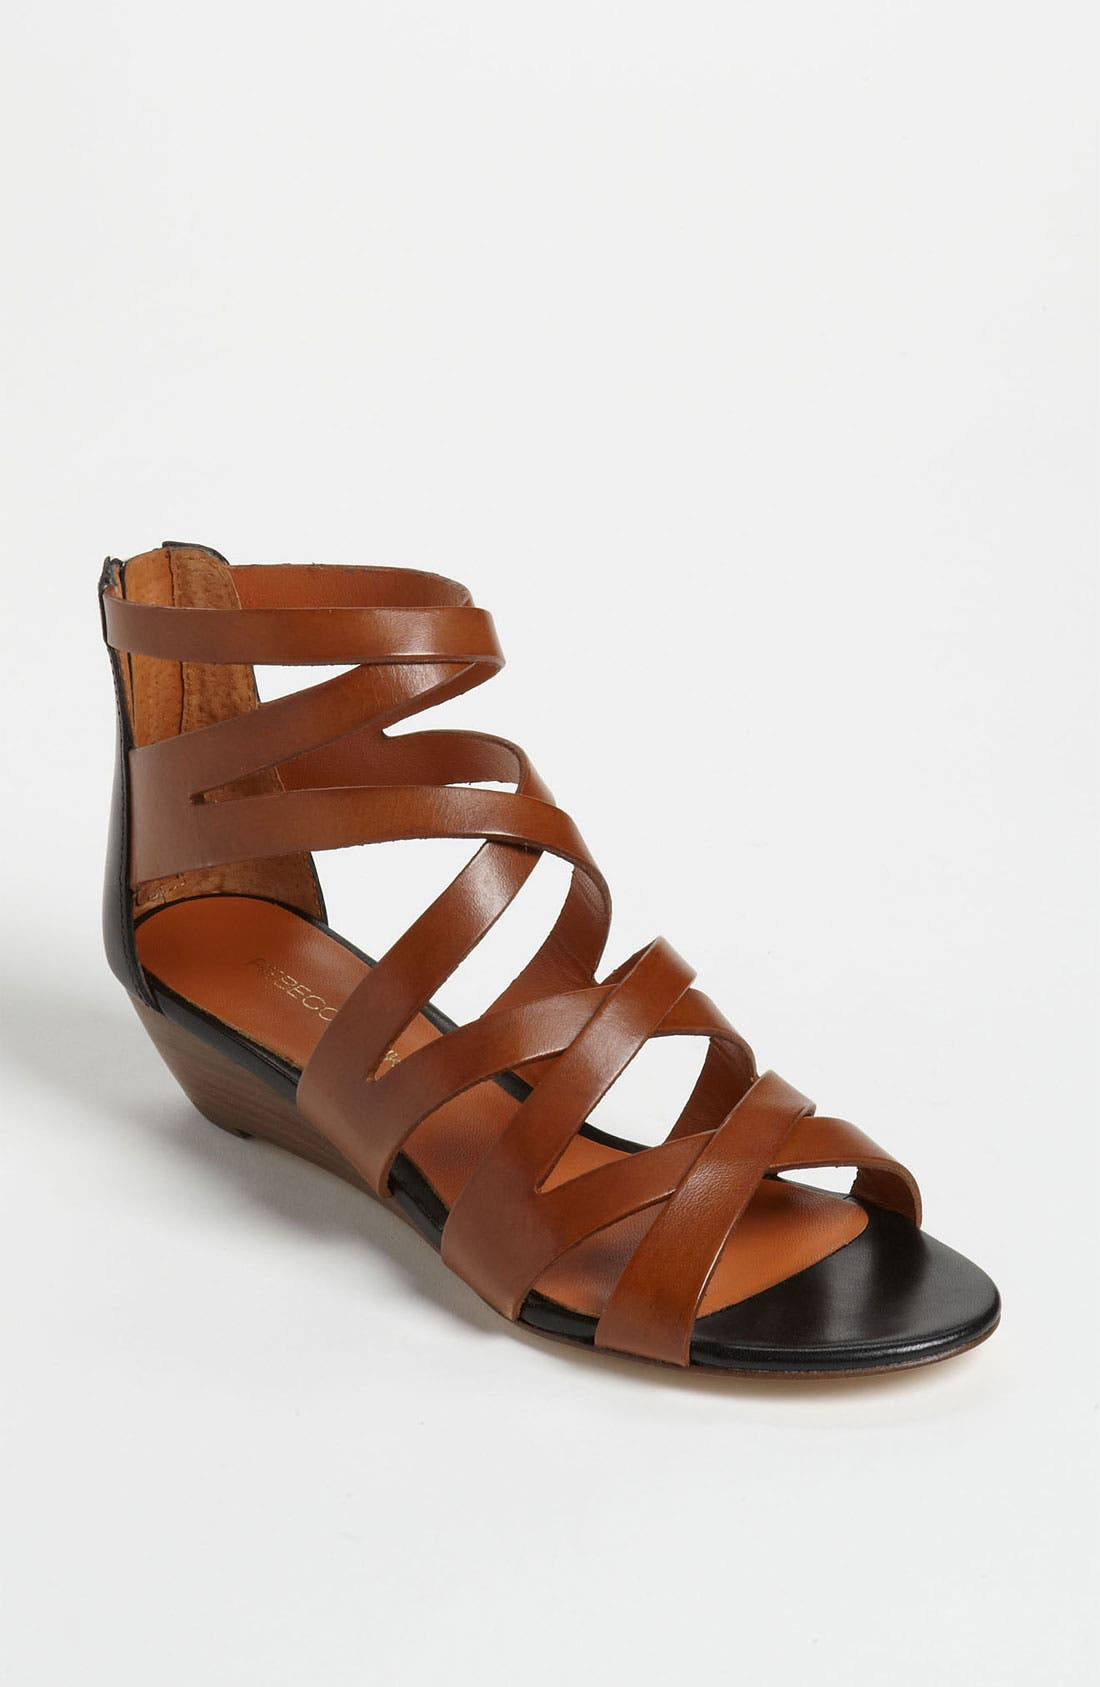 Alternate Image 1 Selected - Rebecca Minkoff 'Bonnie' Sandal (Online Exclusive)